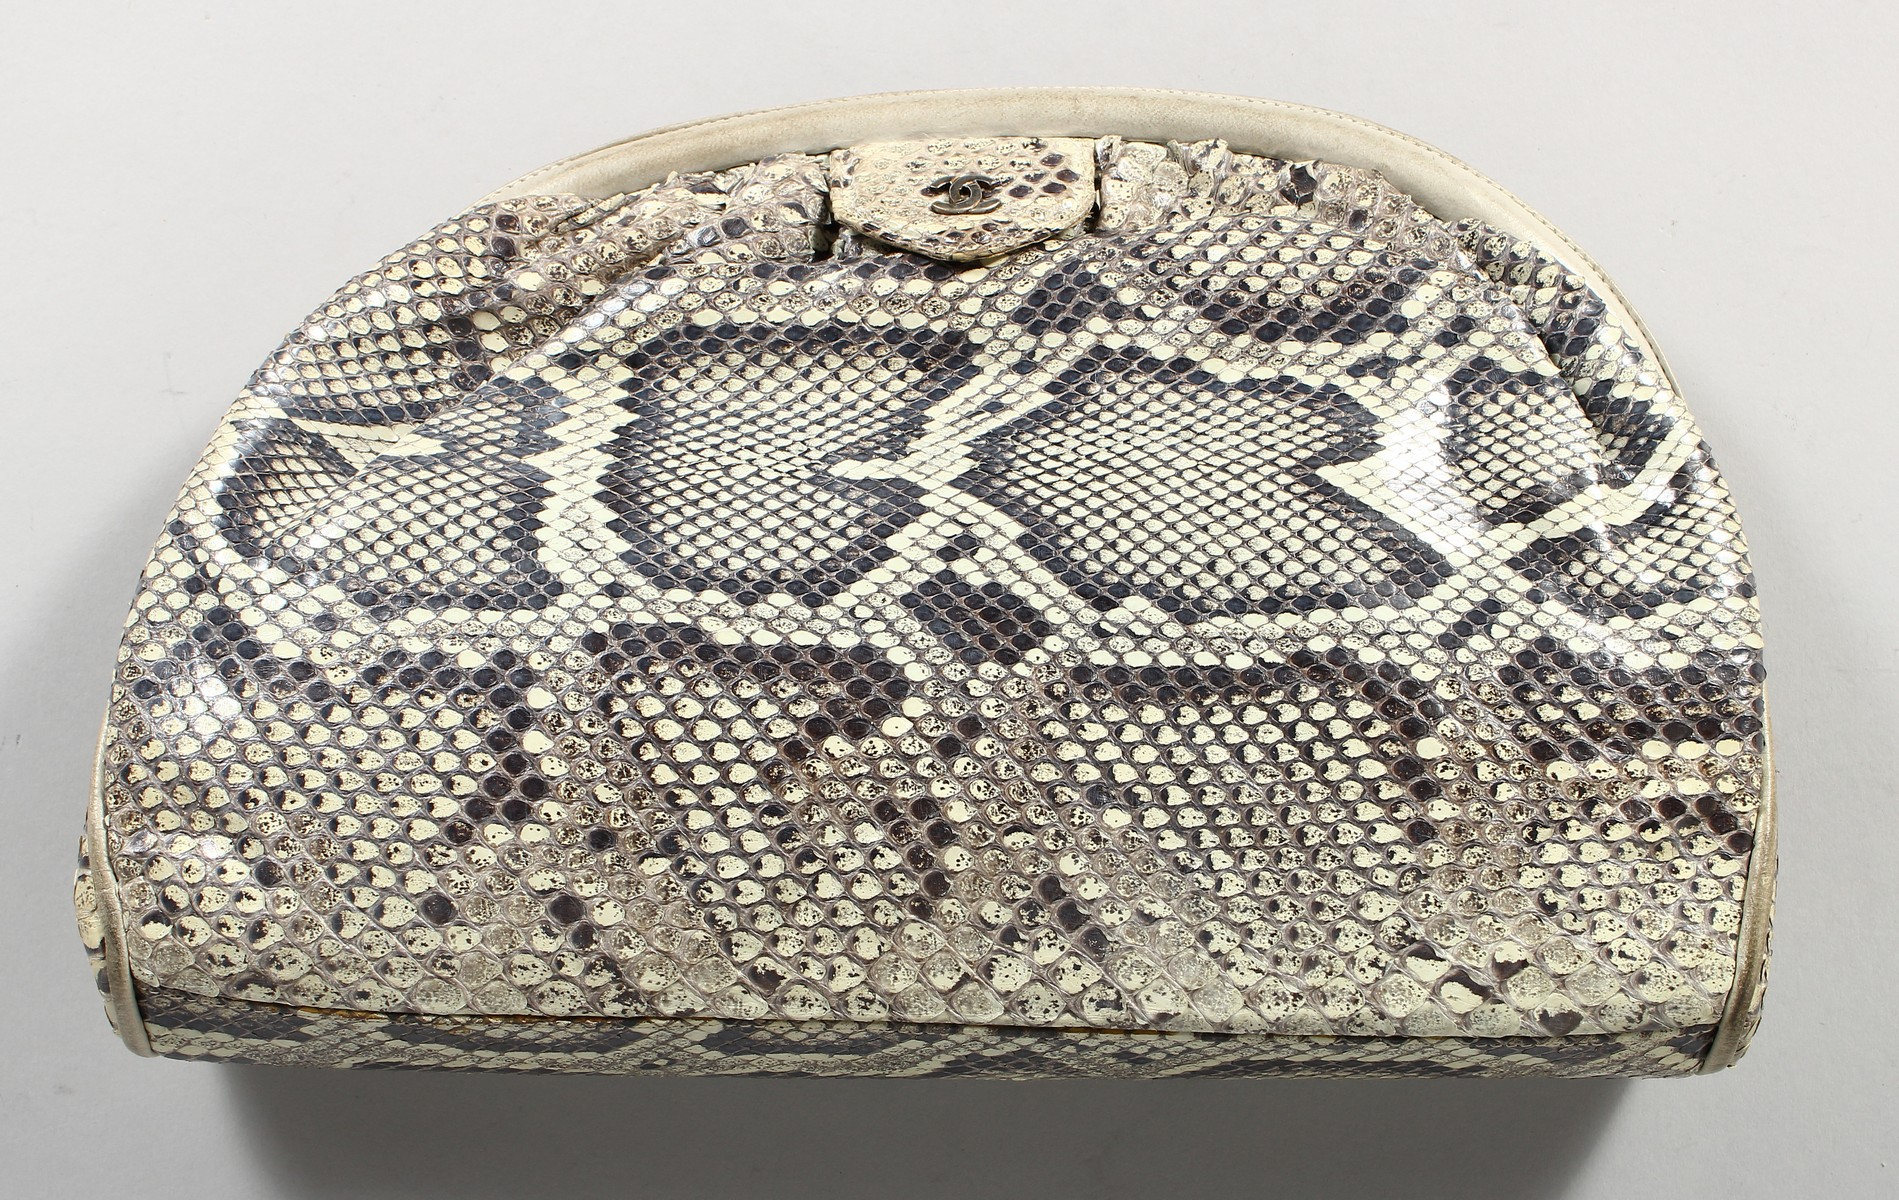 A CHANEL SNAKESKIN BAG with leather interior. Made in Italy. 11ins long. - Image 7 of 9